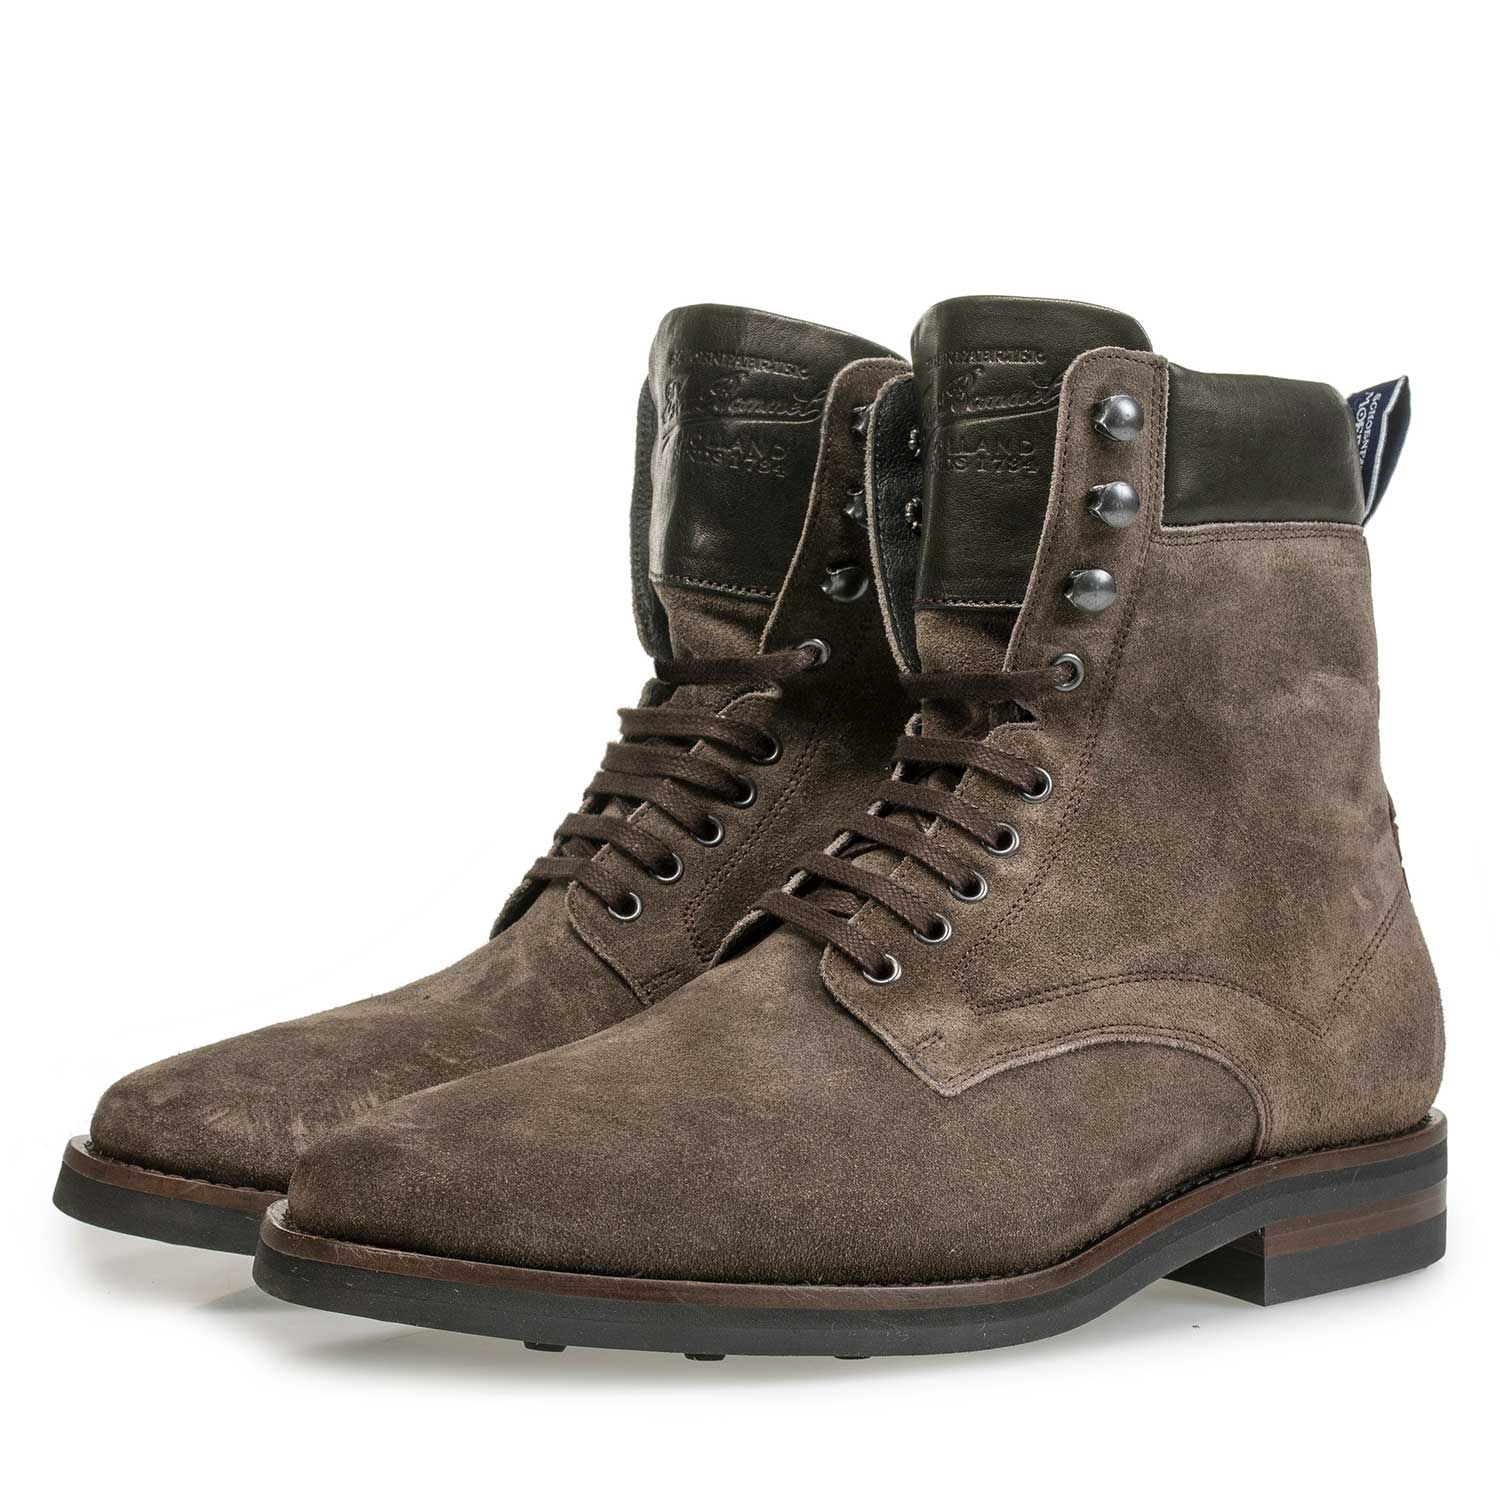 10658/05 - Lace boots washed suede leather taupe